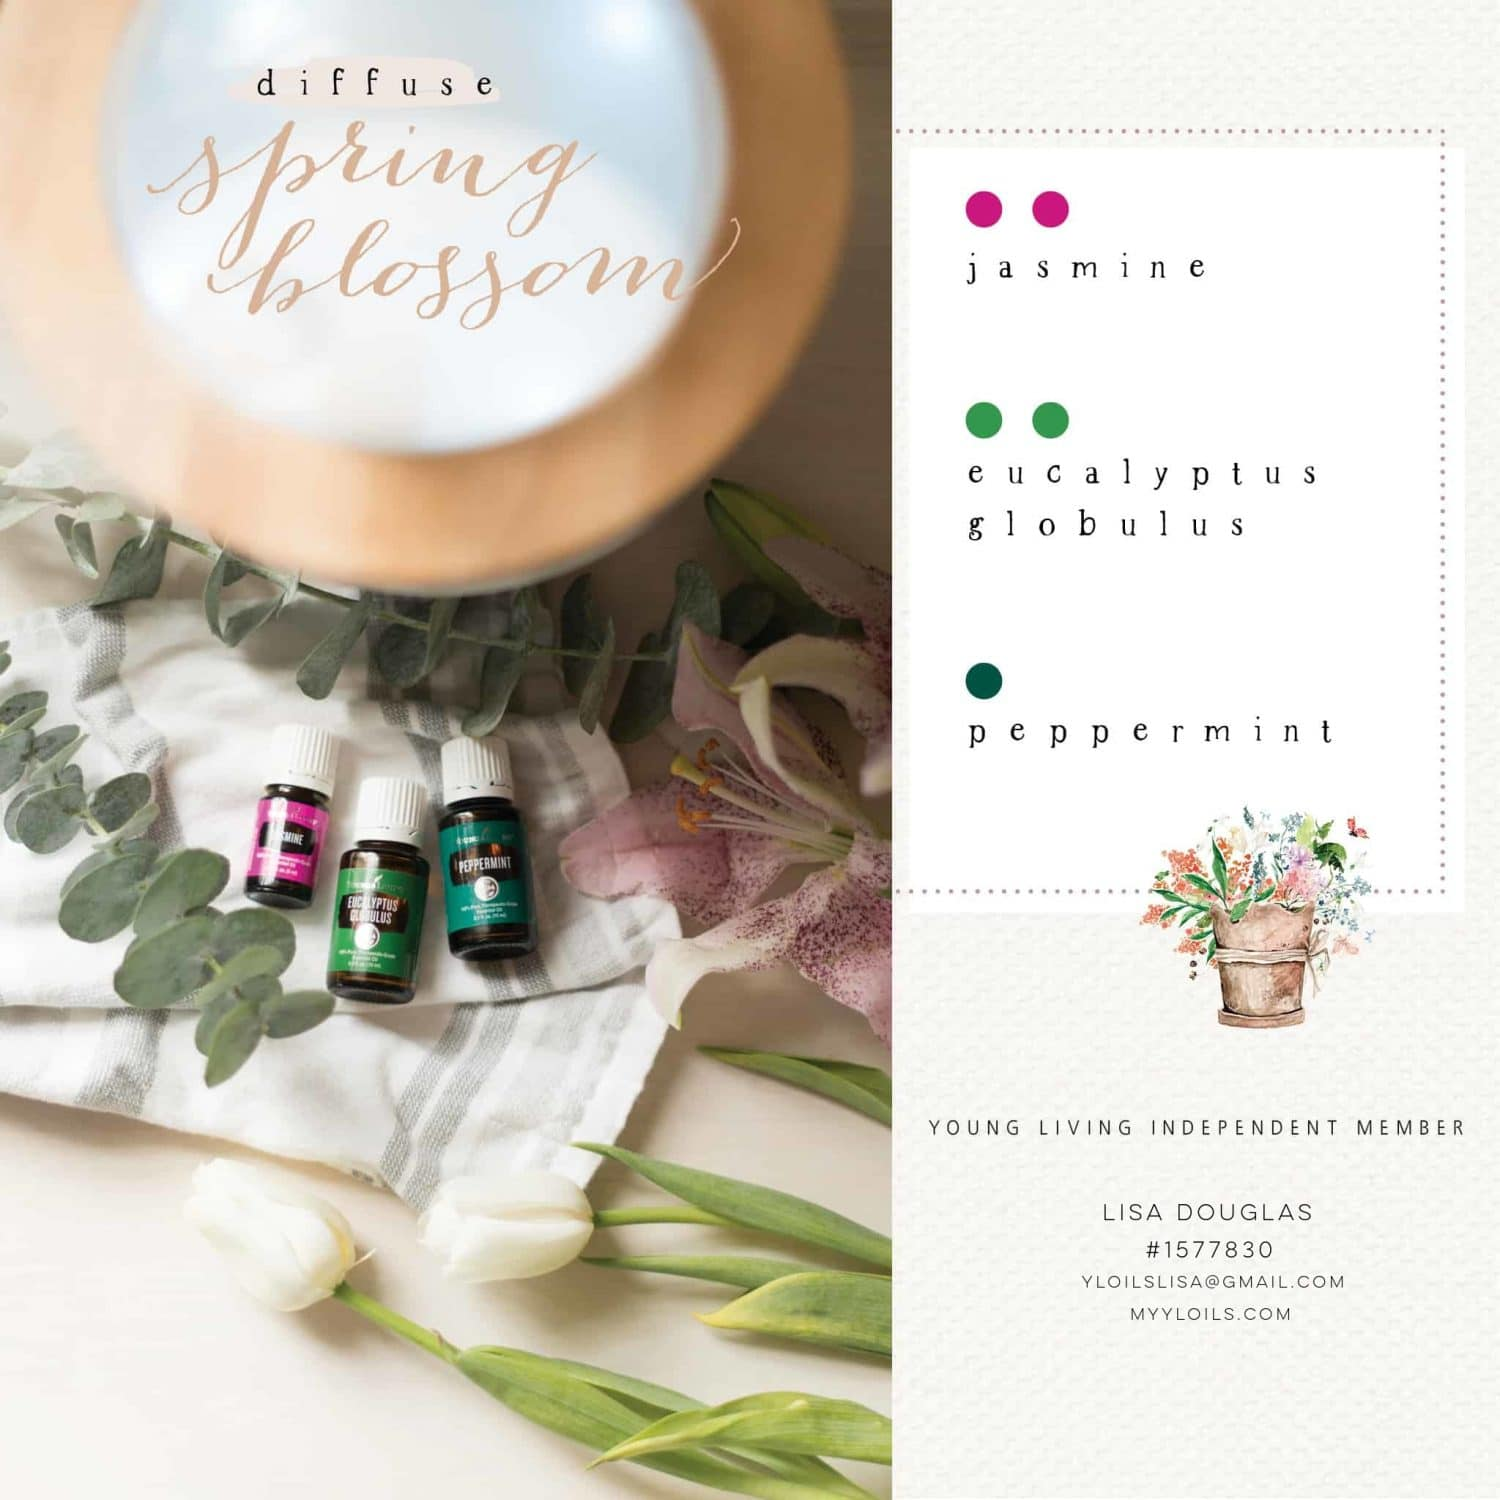 Spring Blossom Young Living DIffuser Recipe